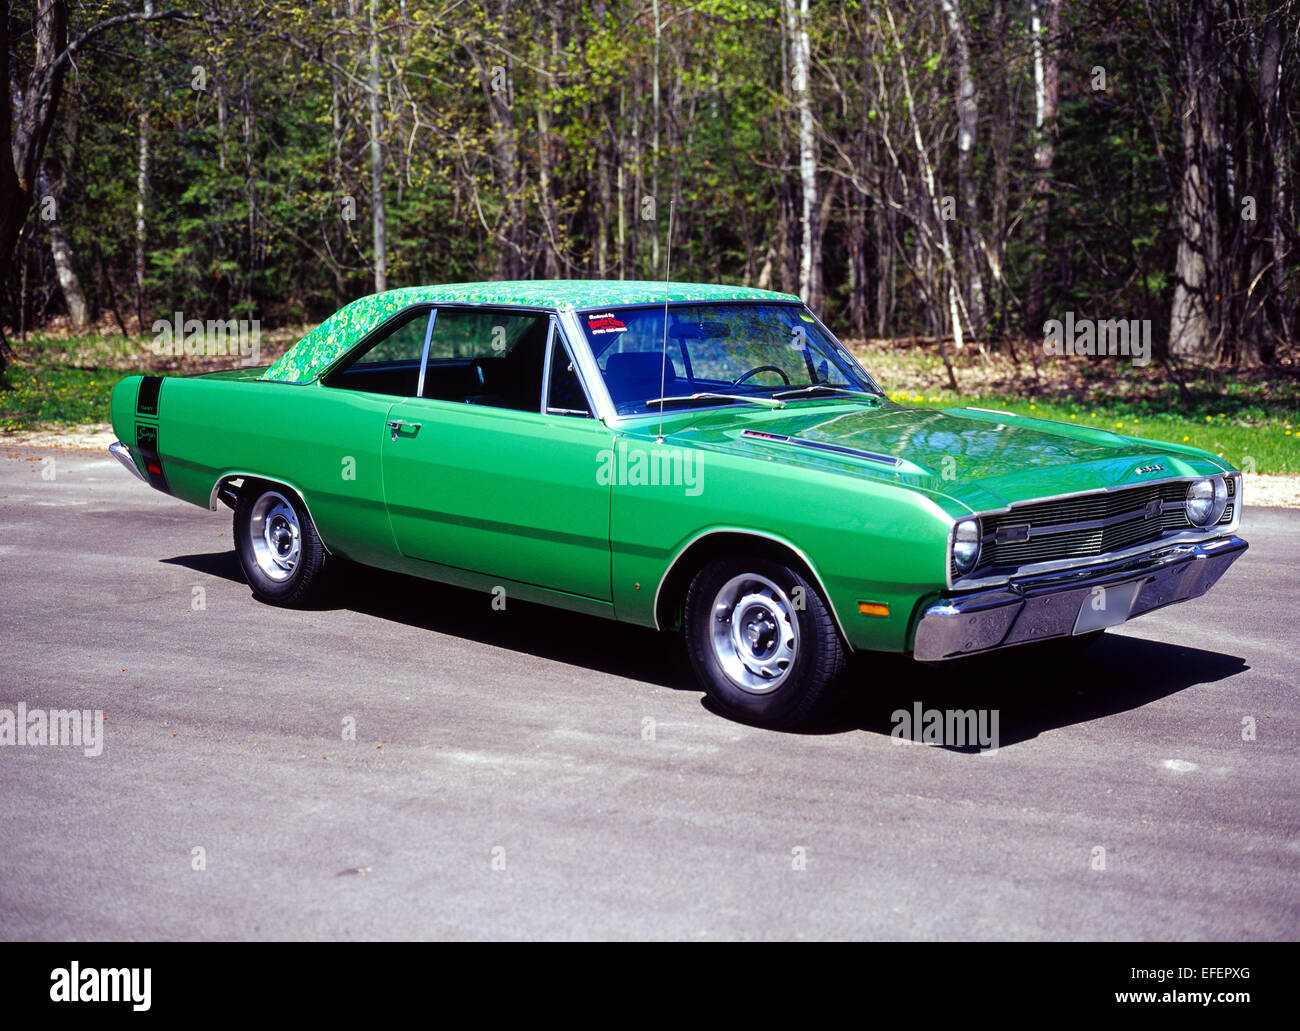 1969 Dodge Dart Swinger With Mod Top Option Stock Photo 78386632